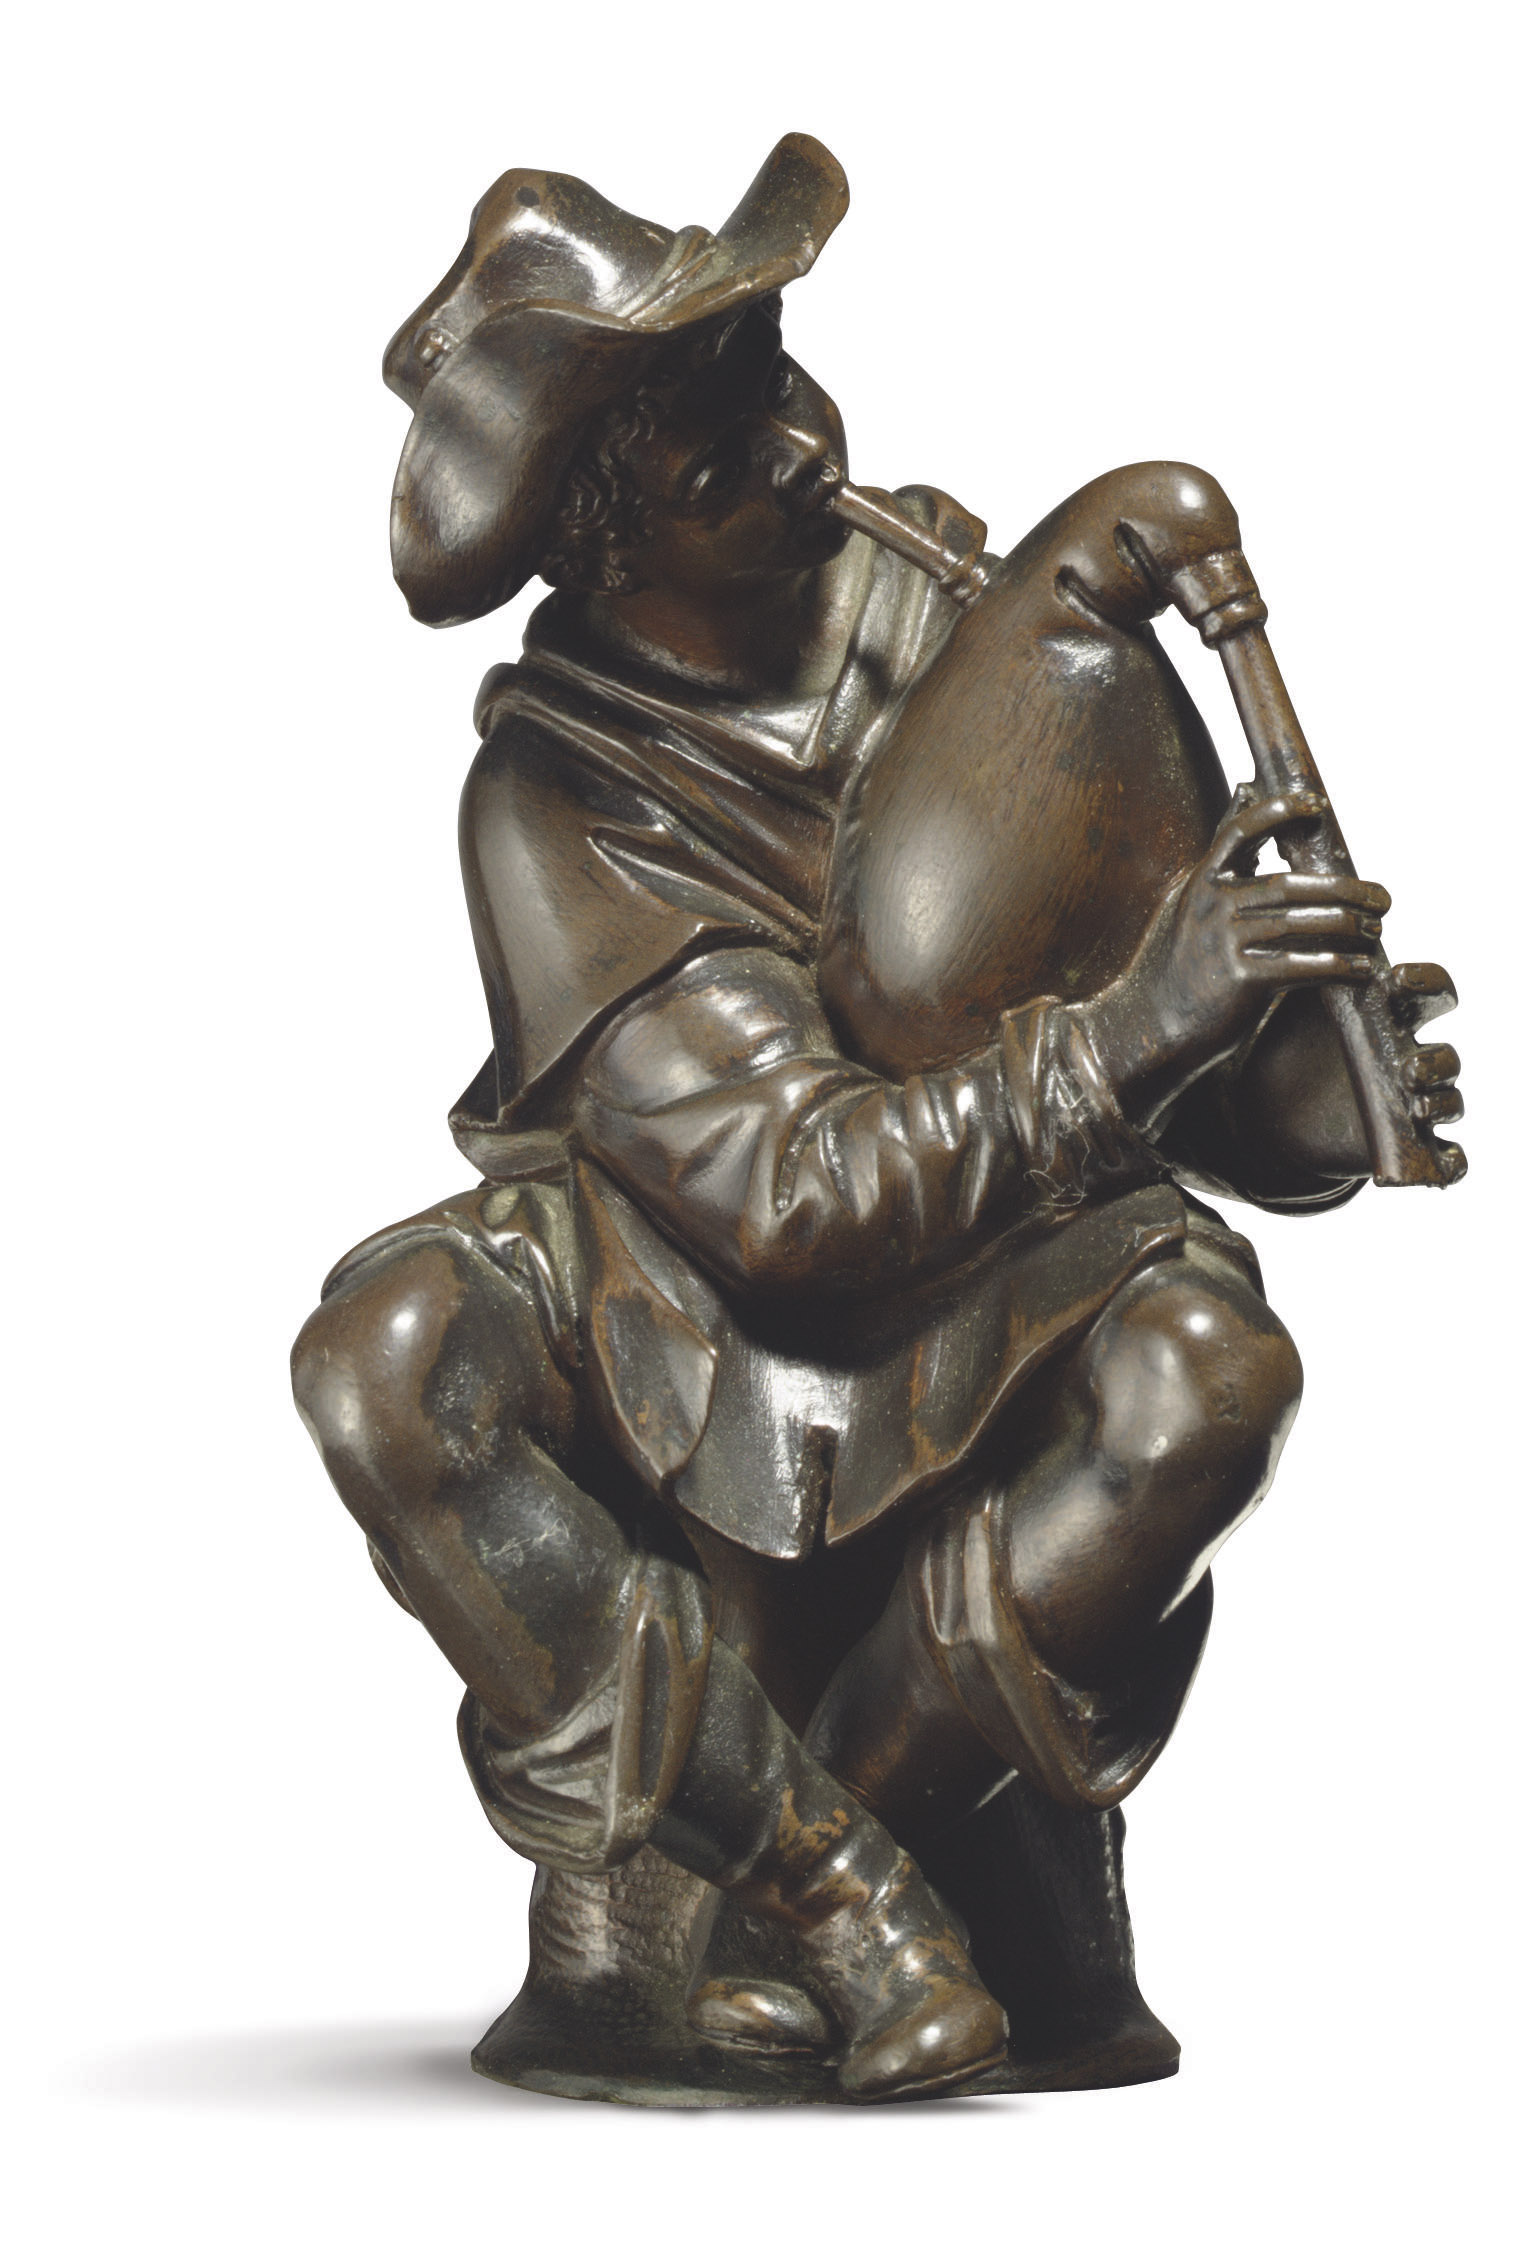 A BRONZE FIGURE OF A SEATED BAGPIPE PLAYER